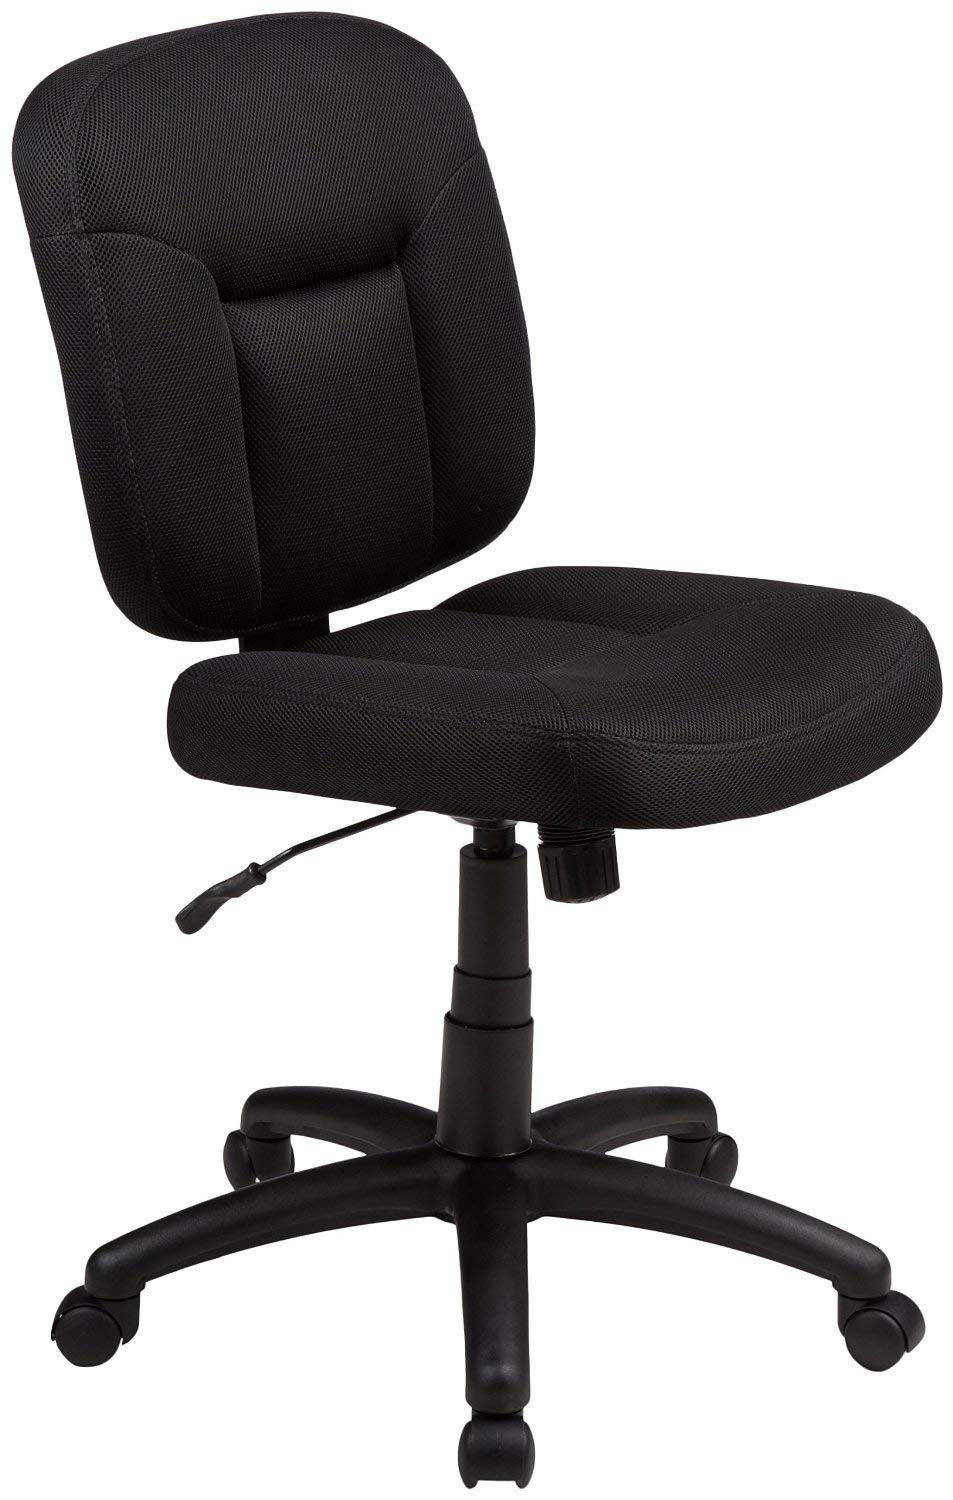 AmazonBasics Office Chairs